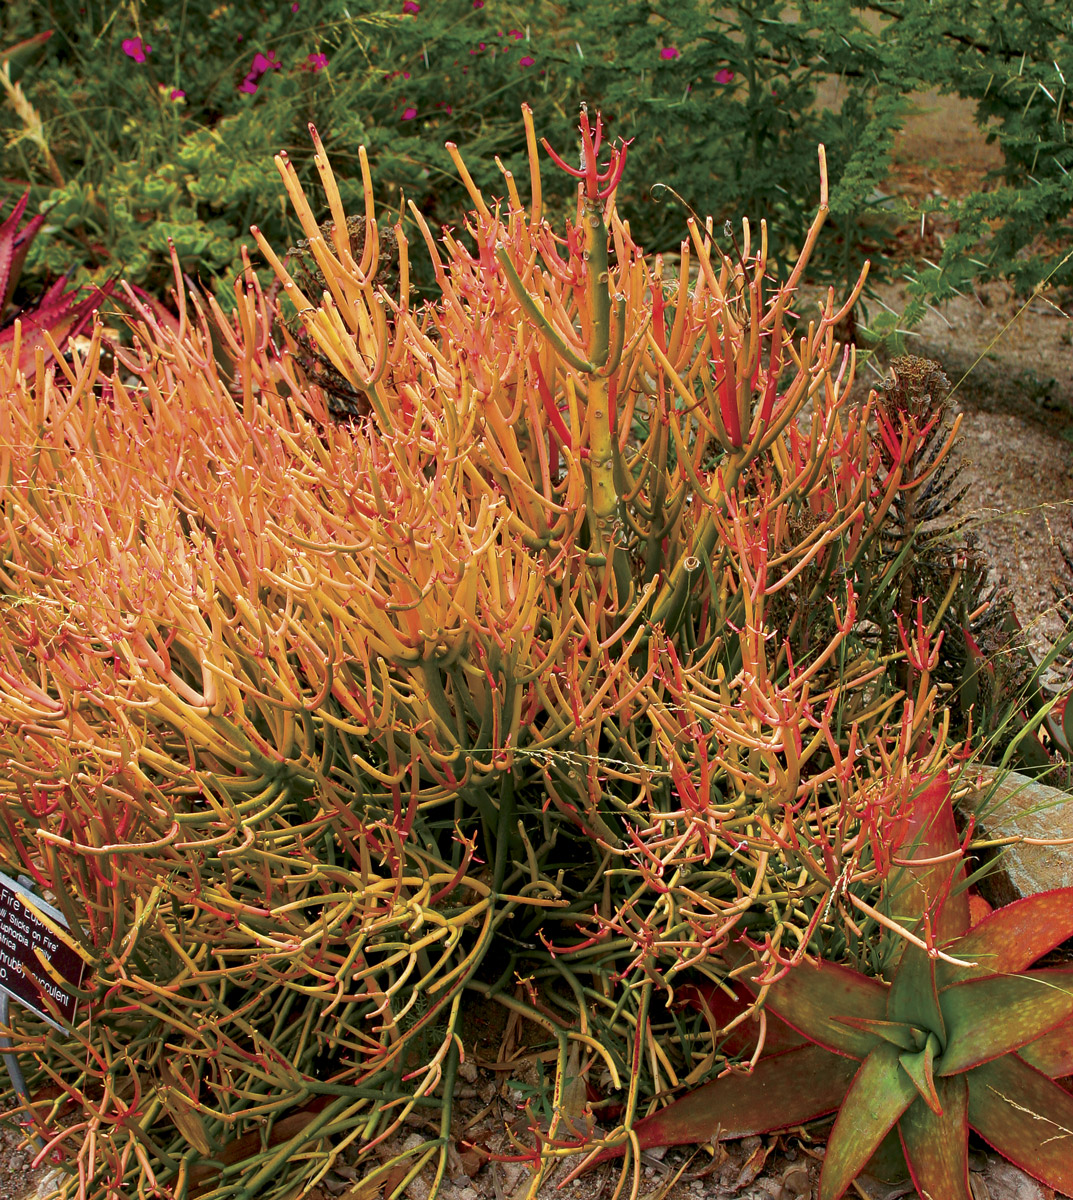 Firesticks (Euphorbia tirucalli 'Rosea')